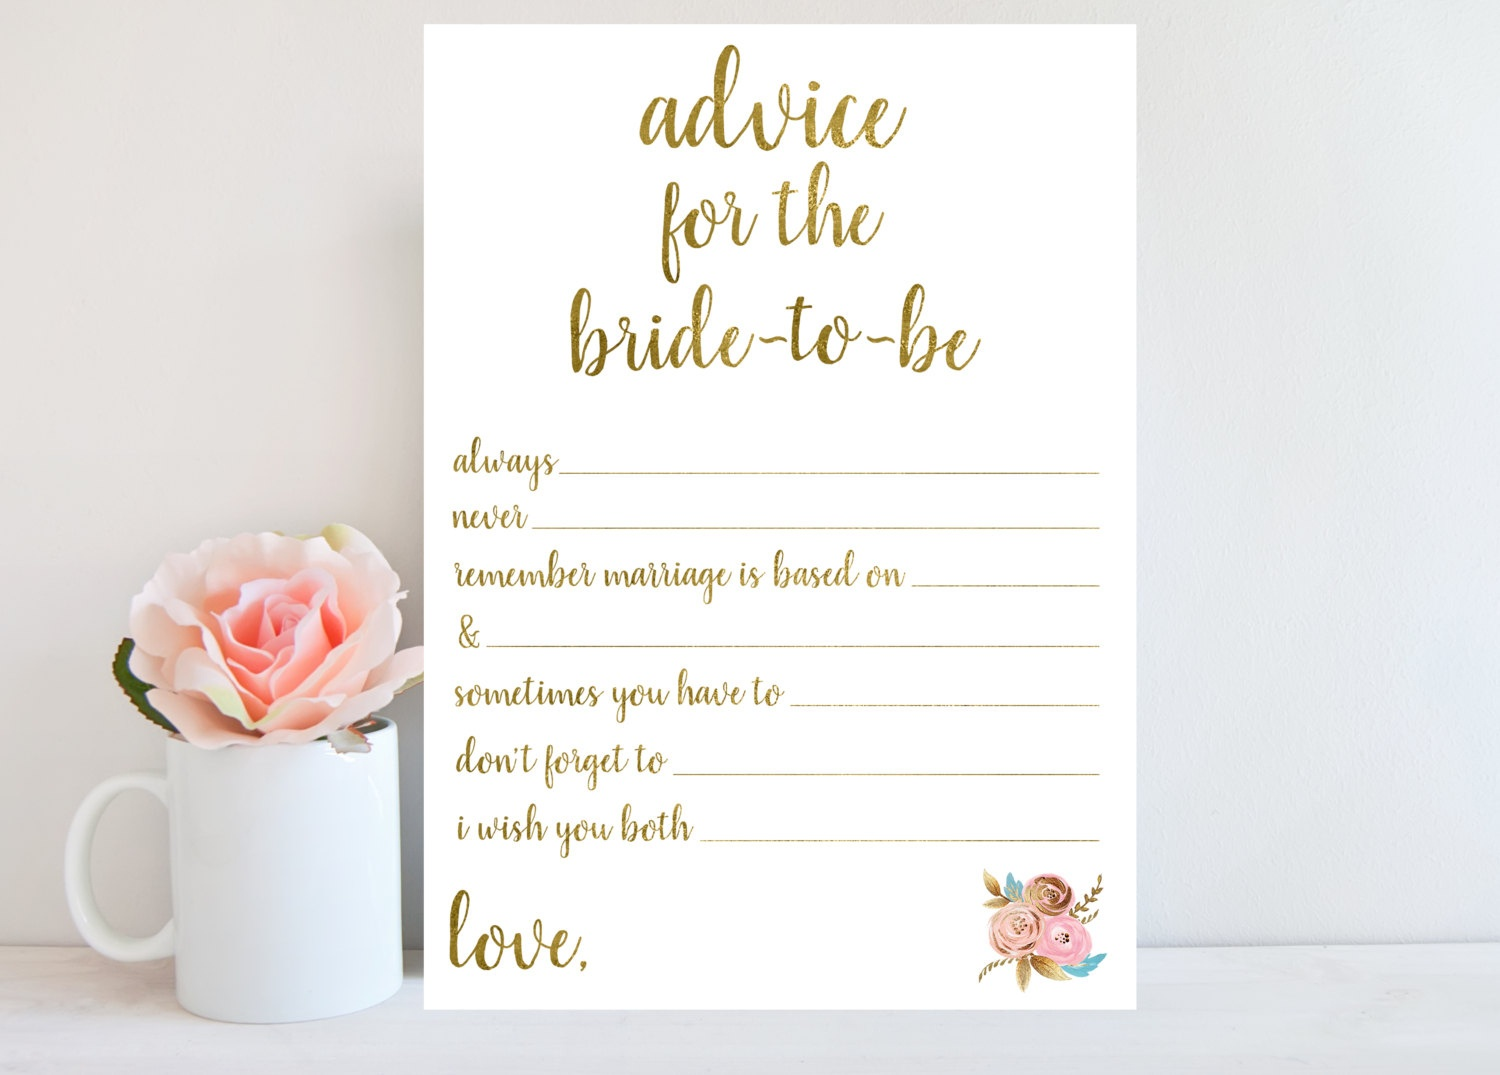 Advice For Bride-To-Be Bridal Shower Advice Cards Printable | Etsy - Free Printable Bridal Shower Advice Cards